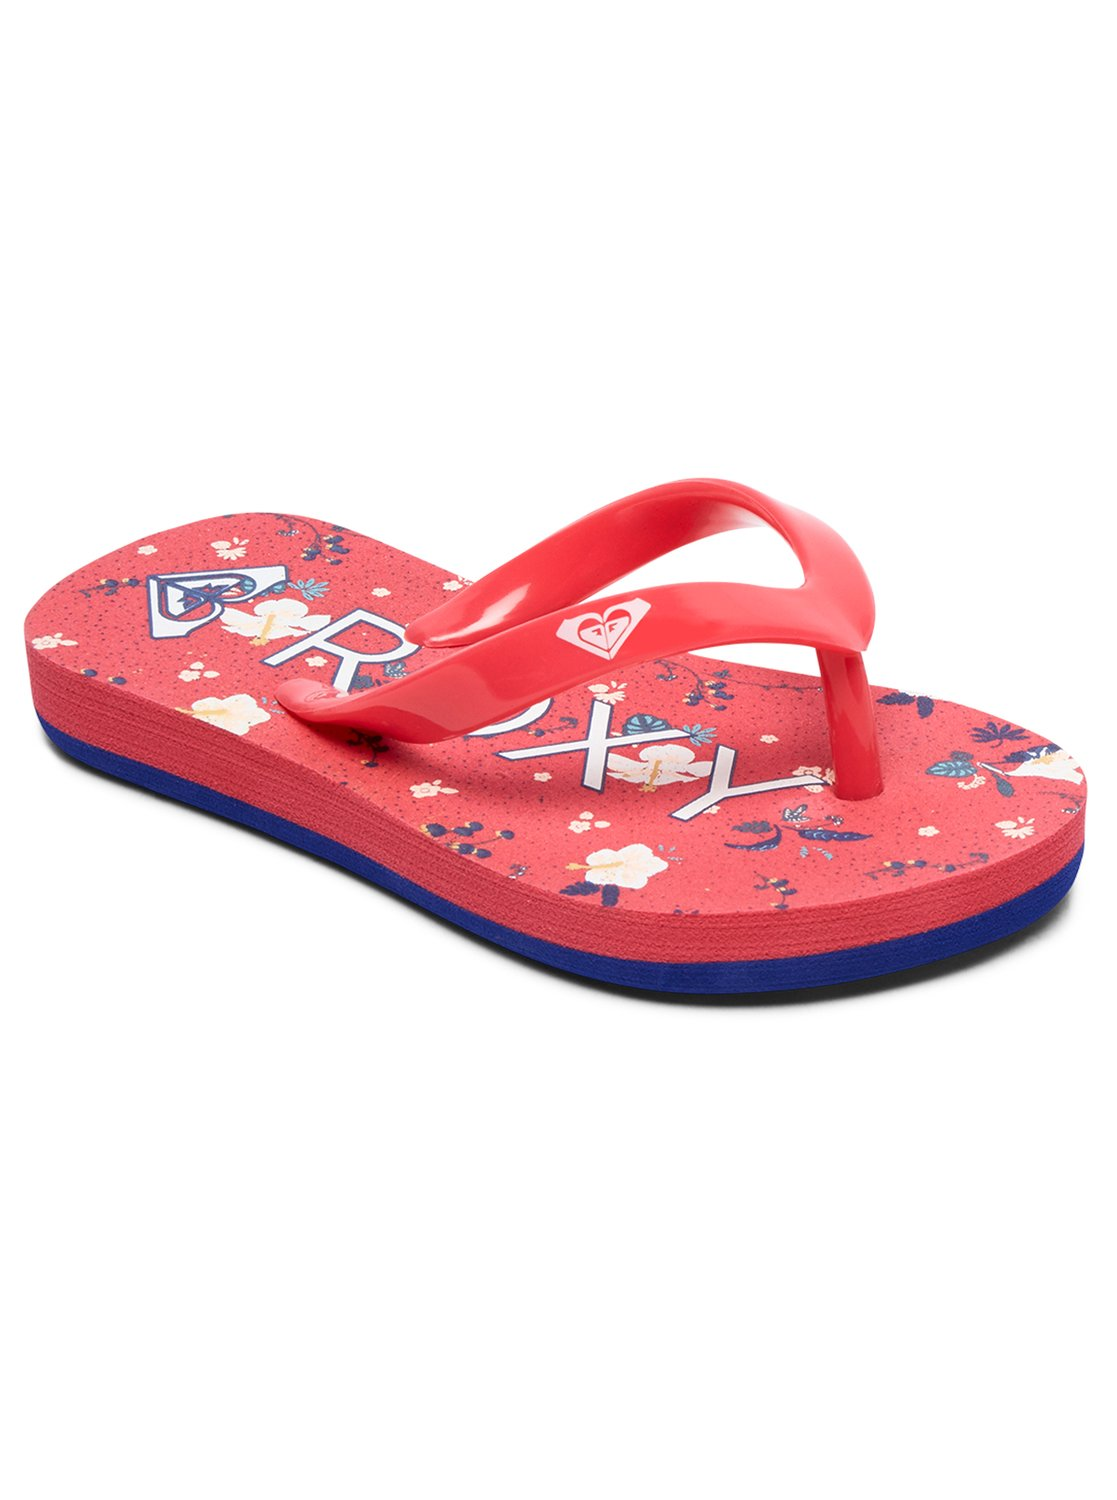 75534a7339 Bamboo - Flip-Flops for Toddlers